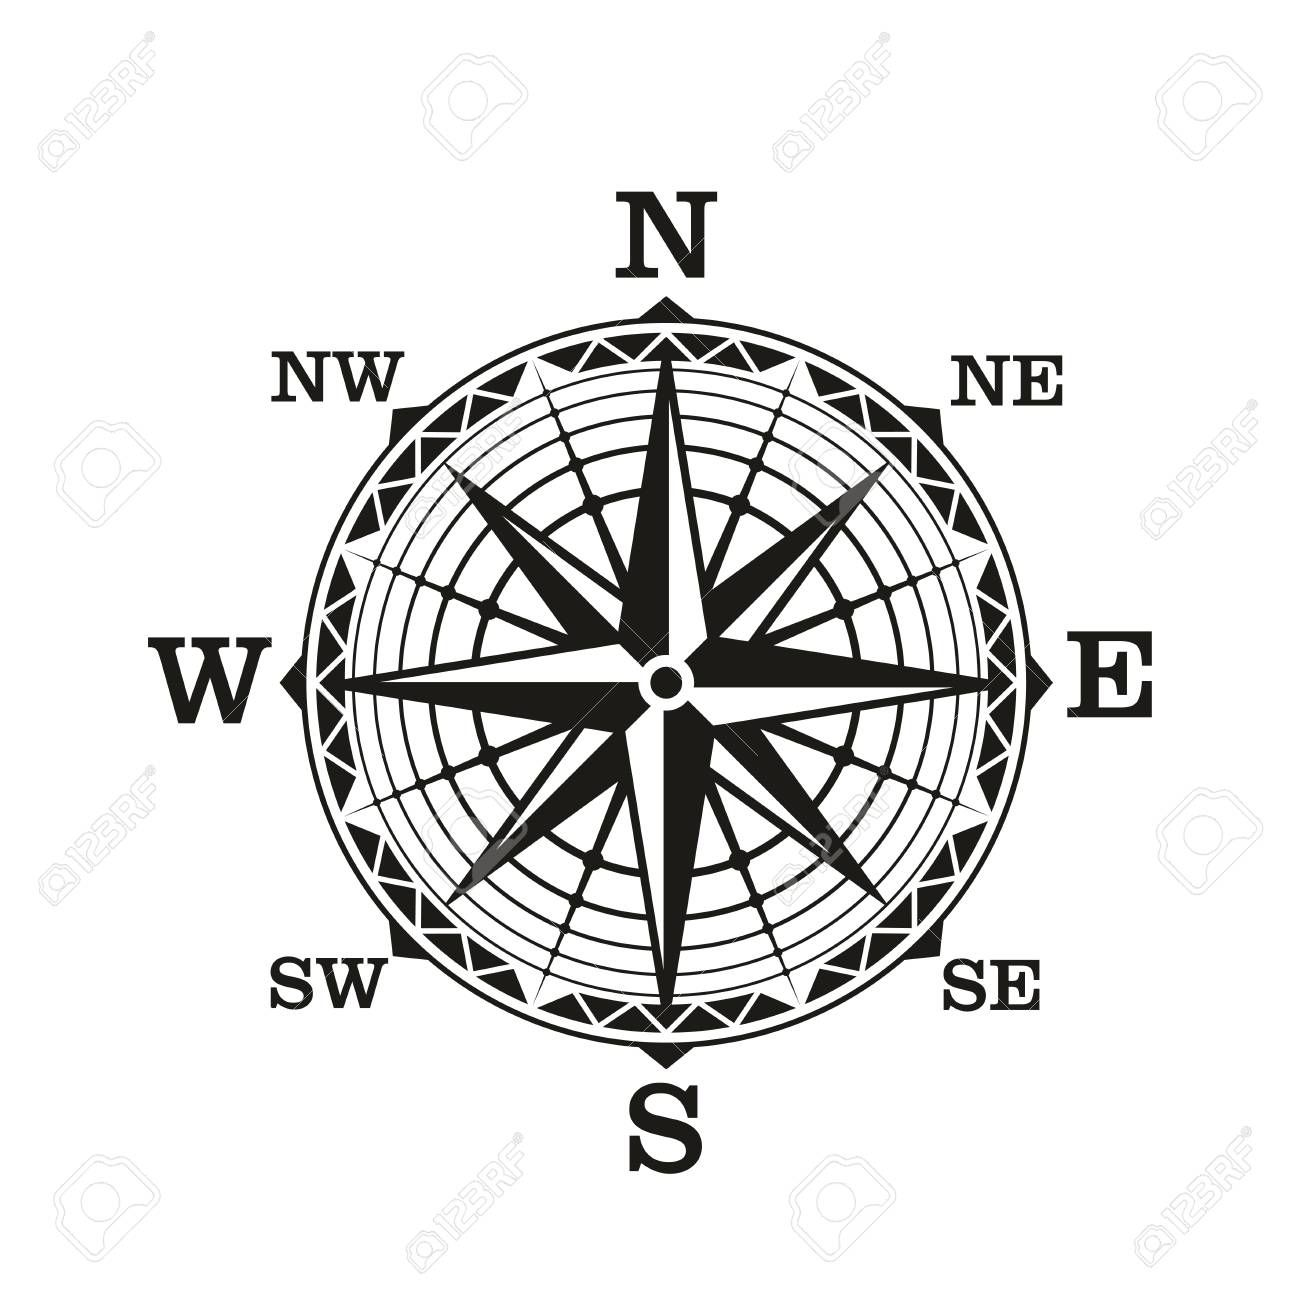 Compass Wind Rose Vector Icon Old Vintage Nautical Navigation Sign With Star Scale Of North South East And West Dire Wind Rose Vintage Nautical Cartography